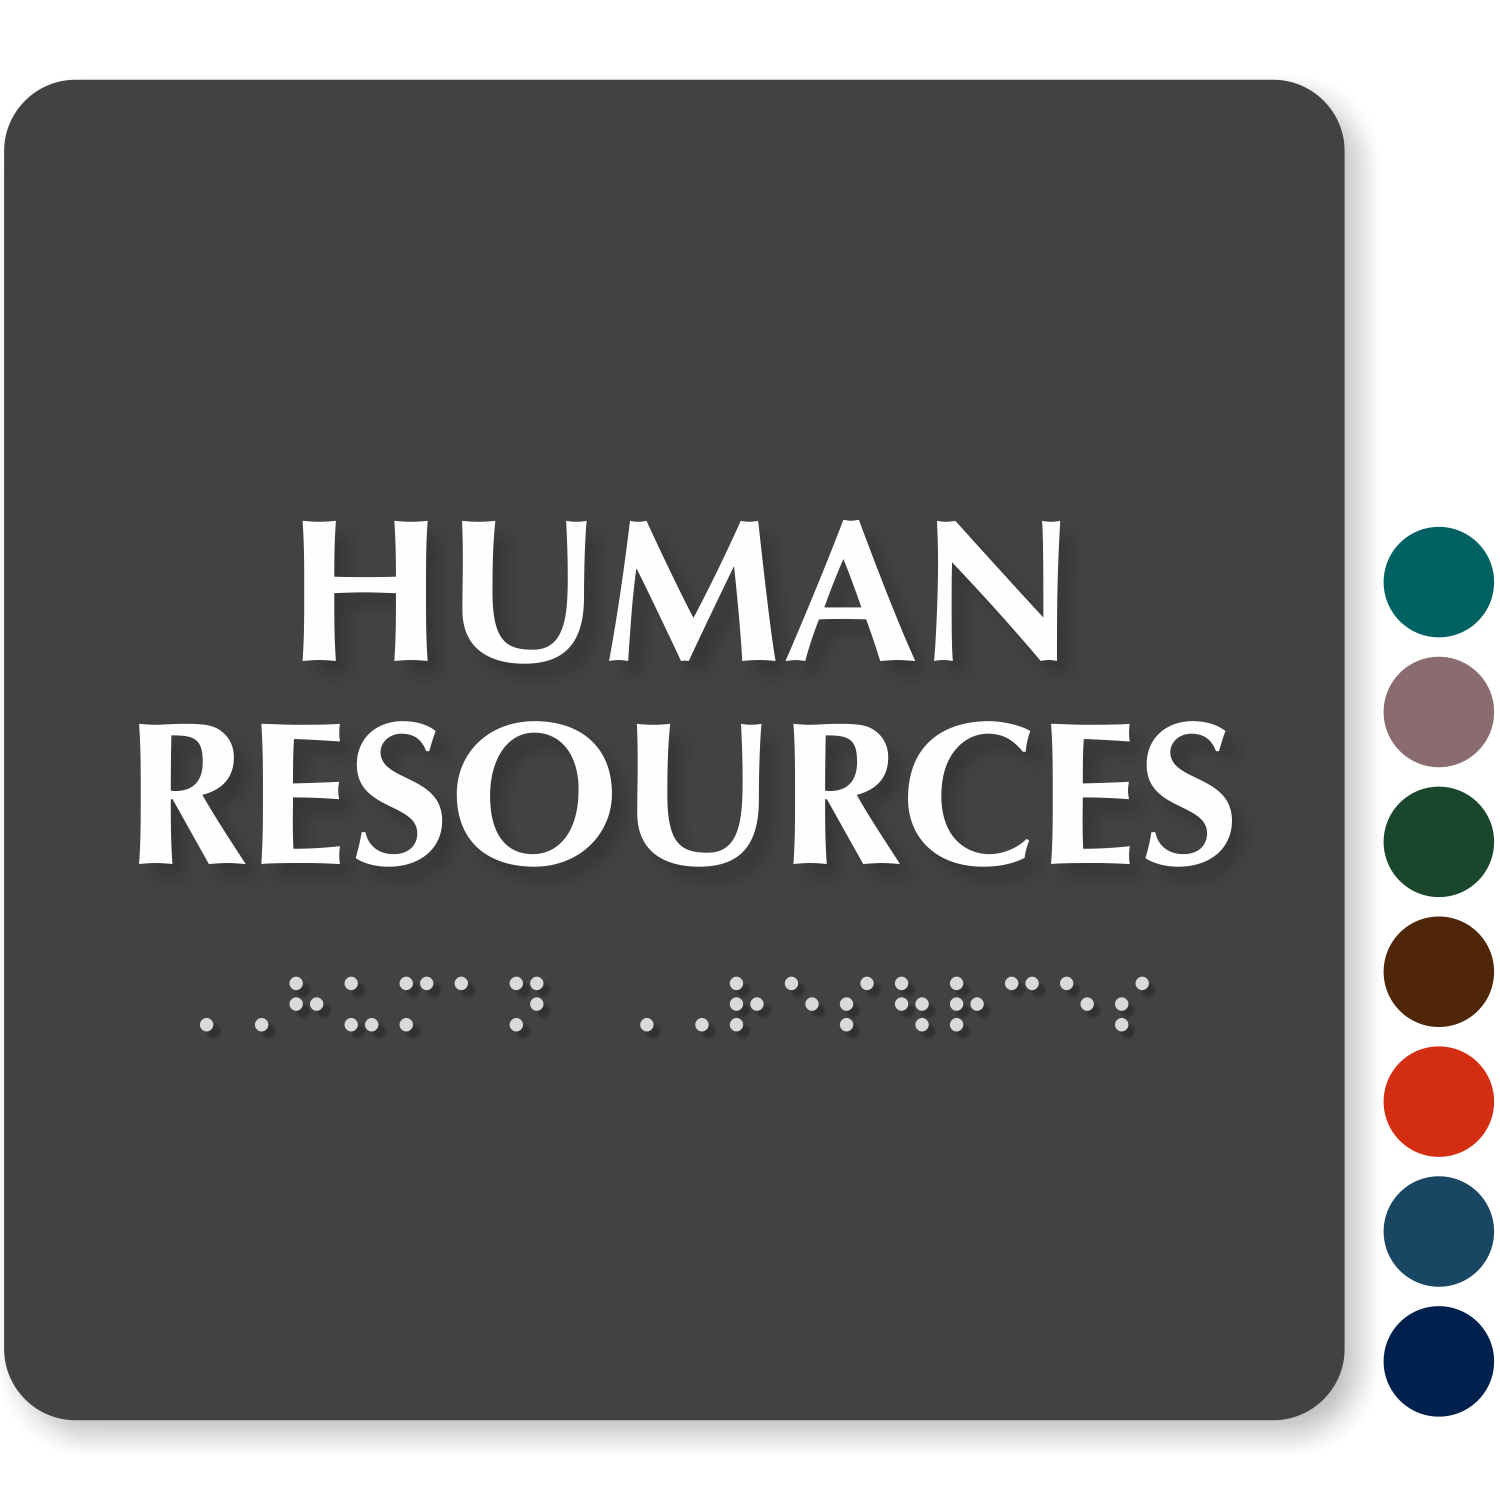 Human Resources: Go/Stop Human Resource HR Slider Signs